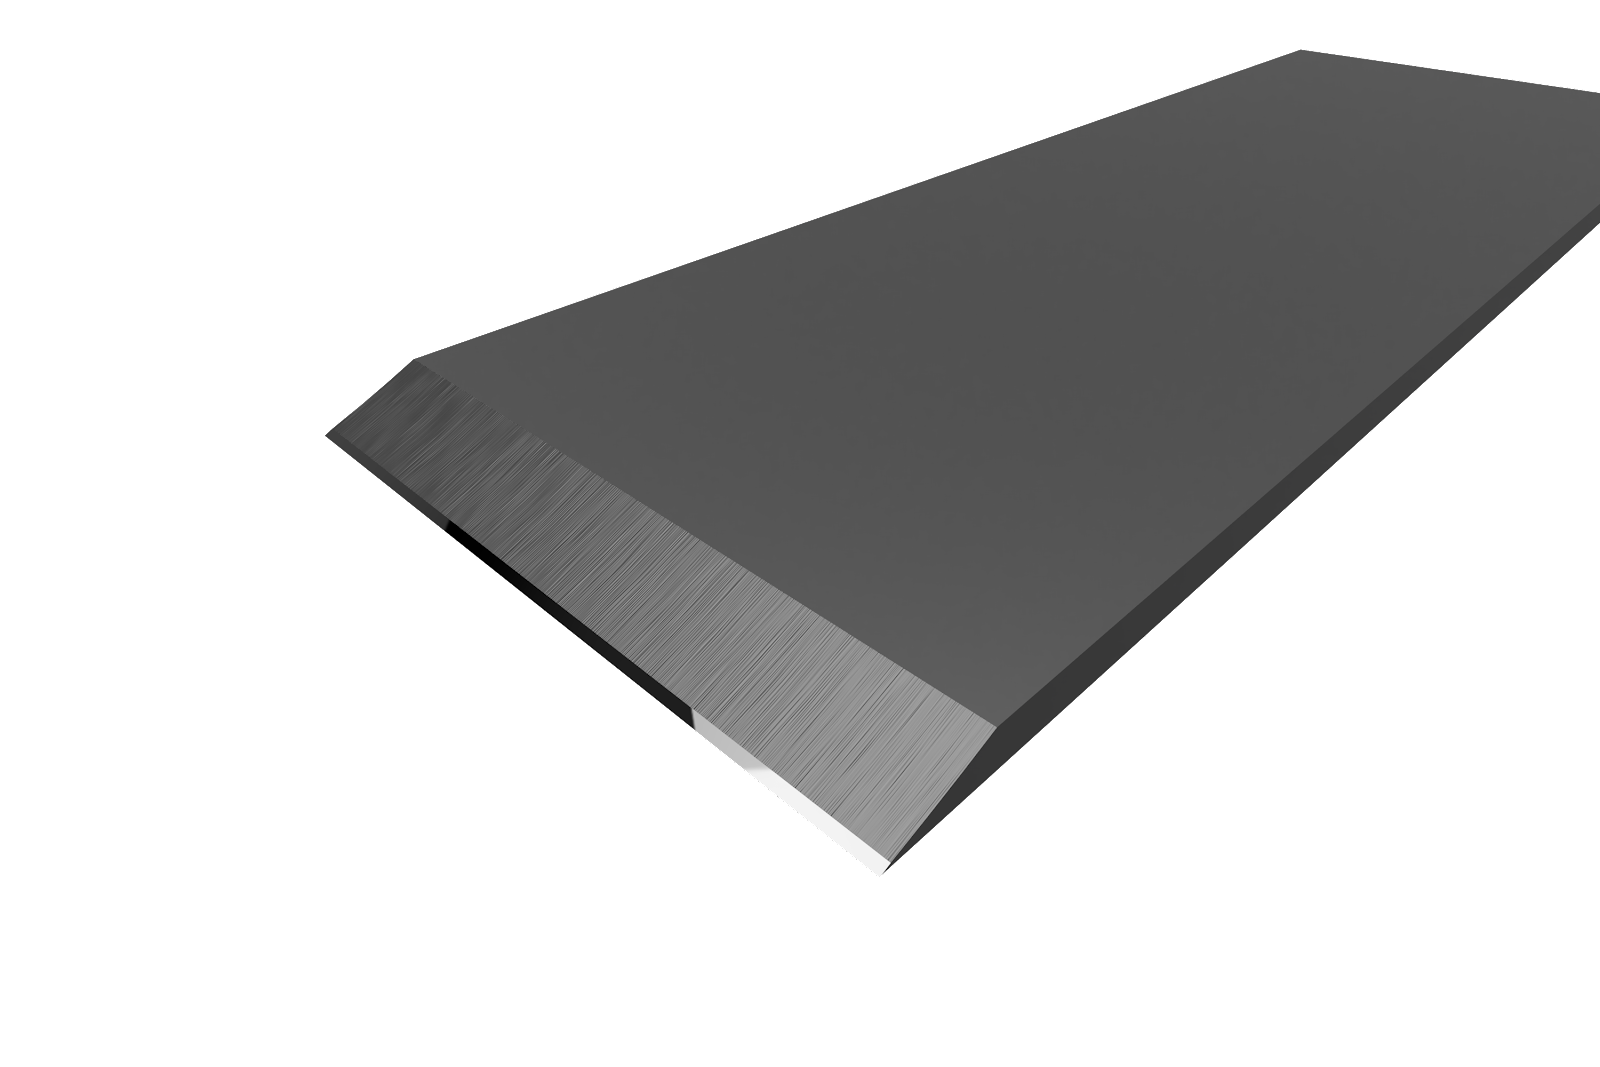 Hollow ground plane blade with micro bevel